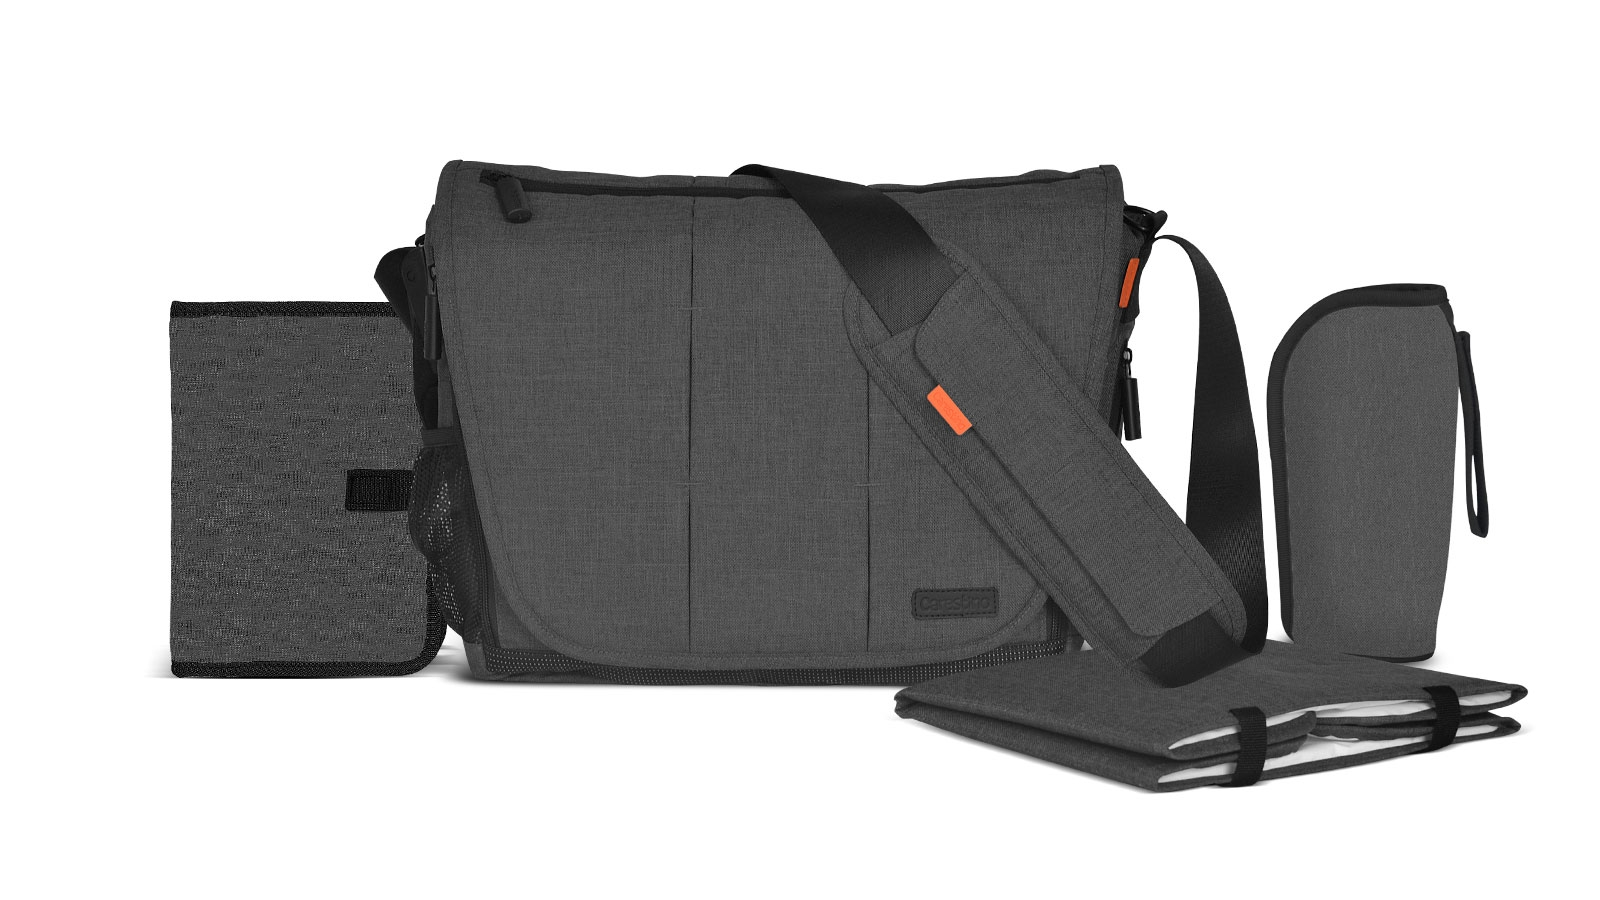 Morral Maternal Unisex Gris Oscuro